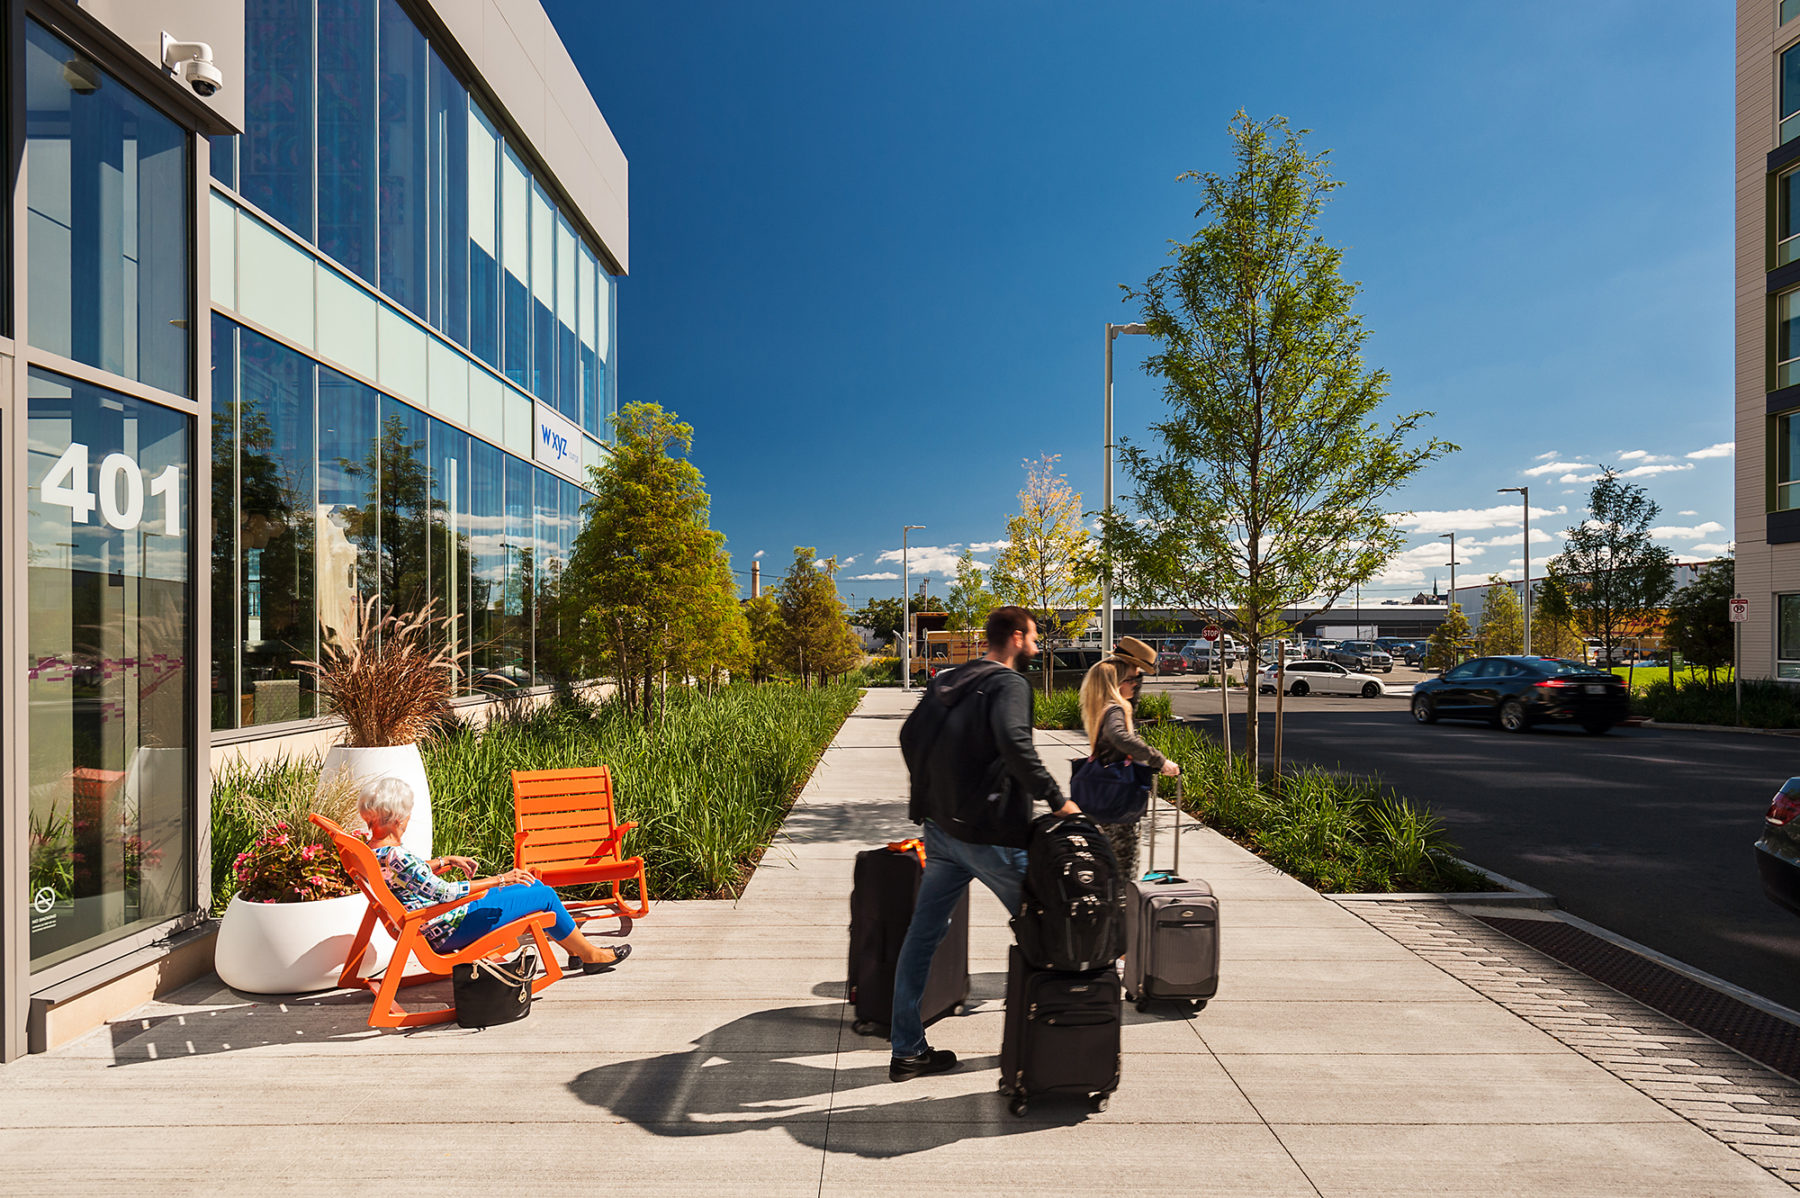 Photo of a couple exiting hotel with luggage. A woman sits in an orange chair on the sidewalk.